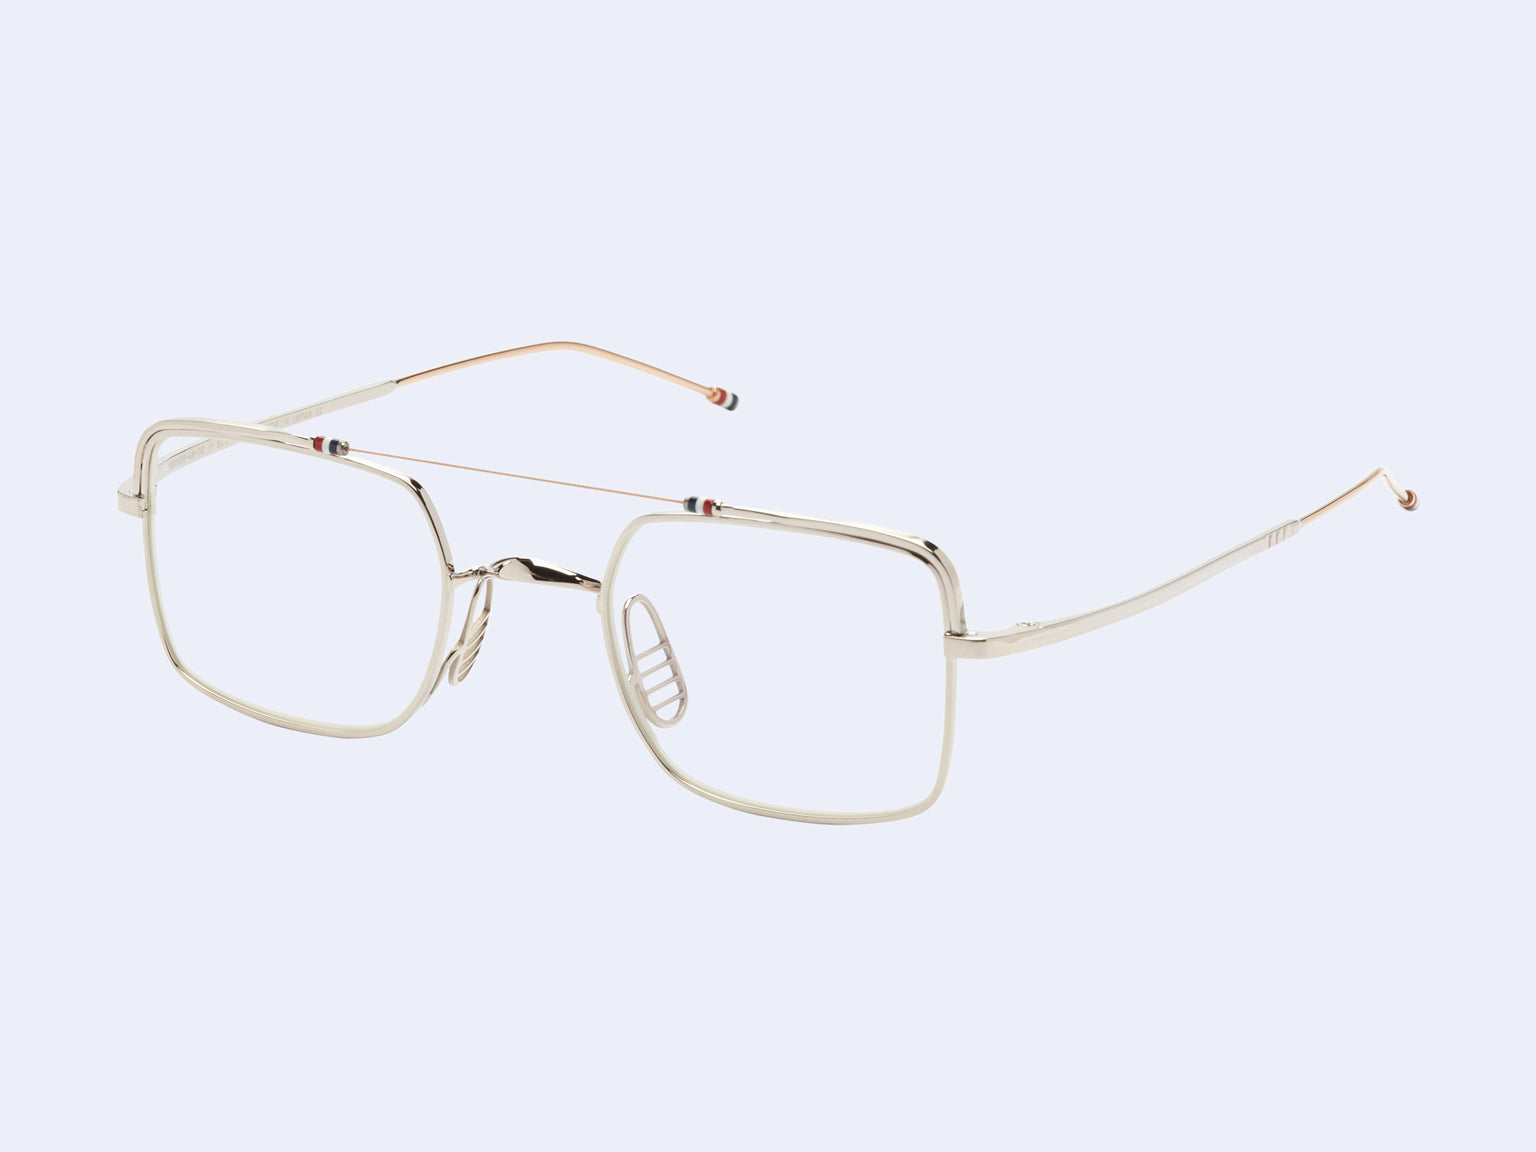 Thom Browne TB-909-02 (Silver White-Gold)